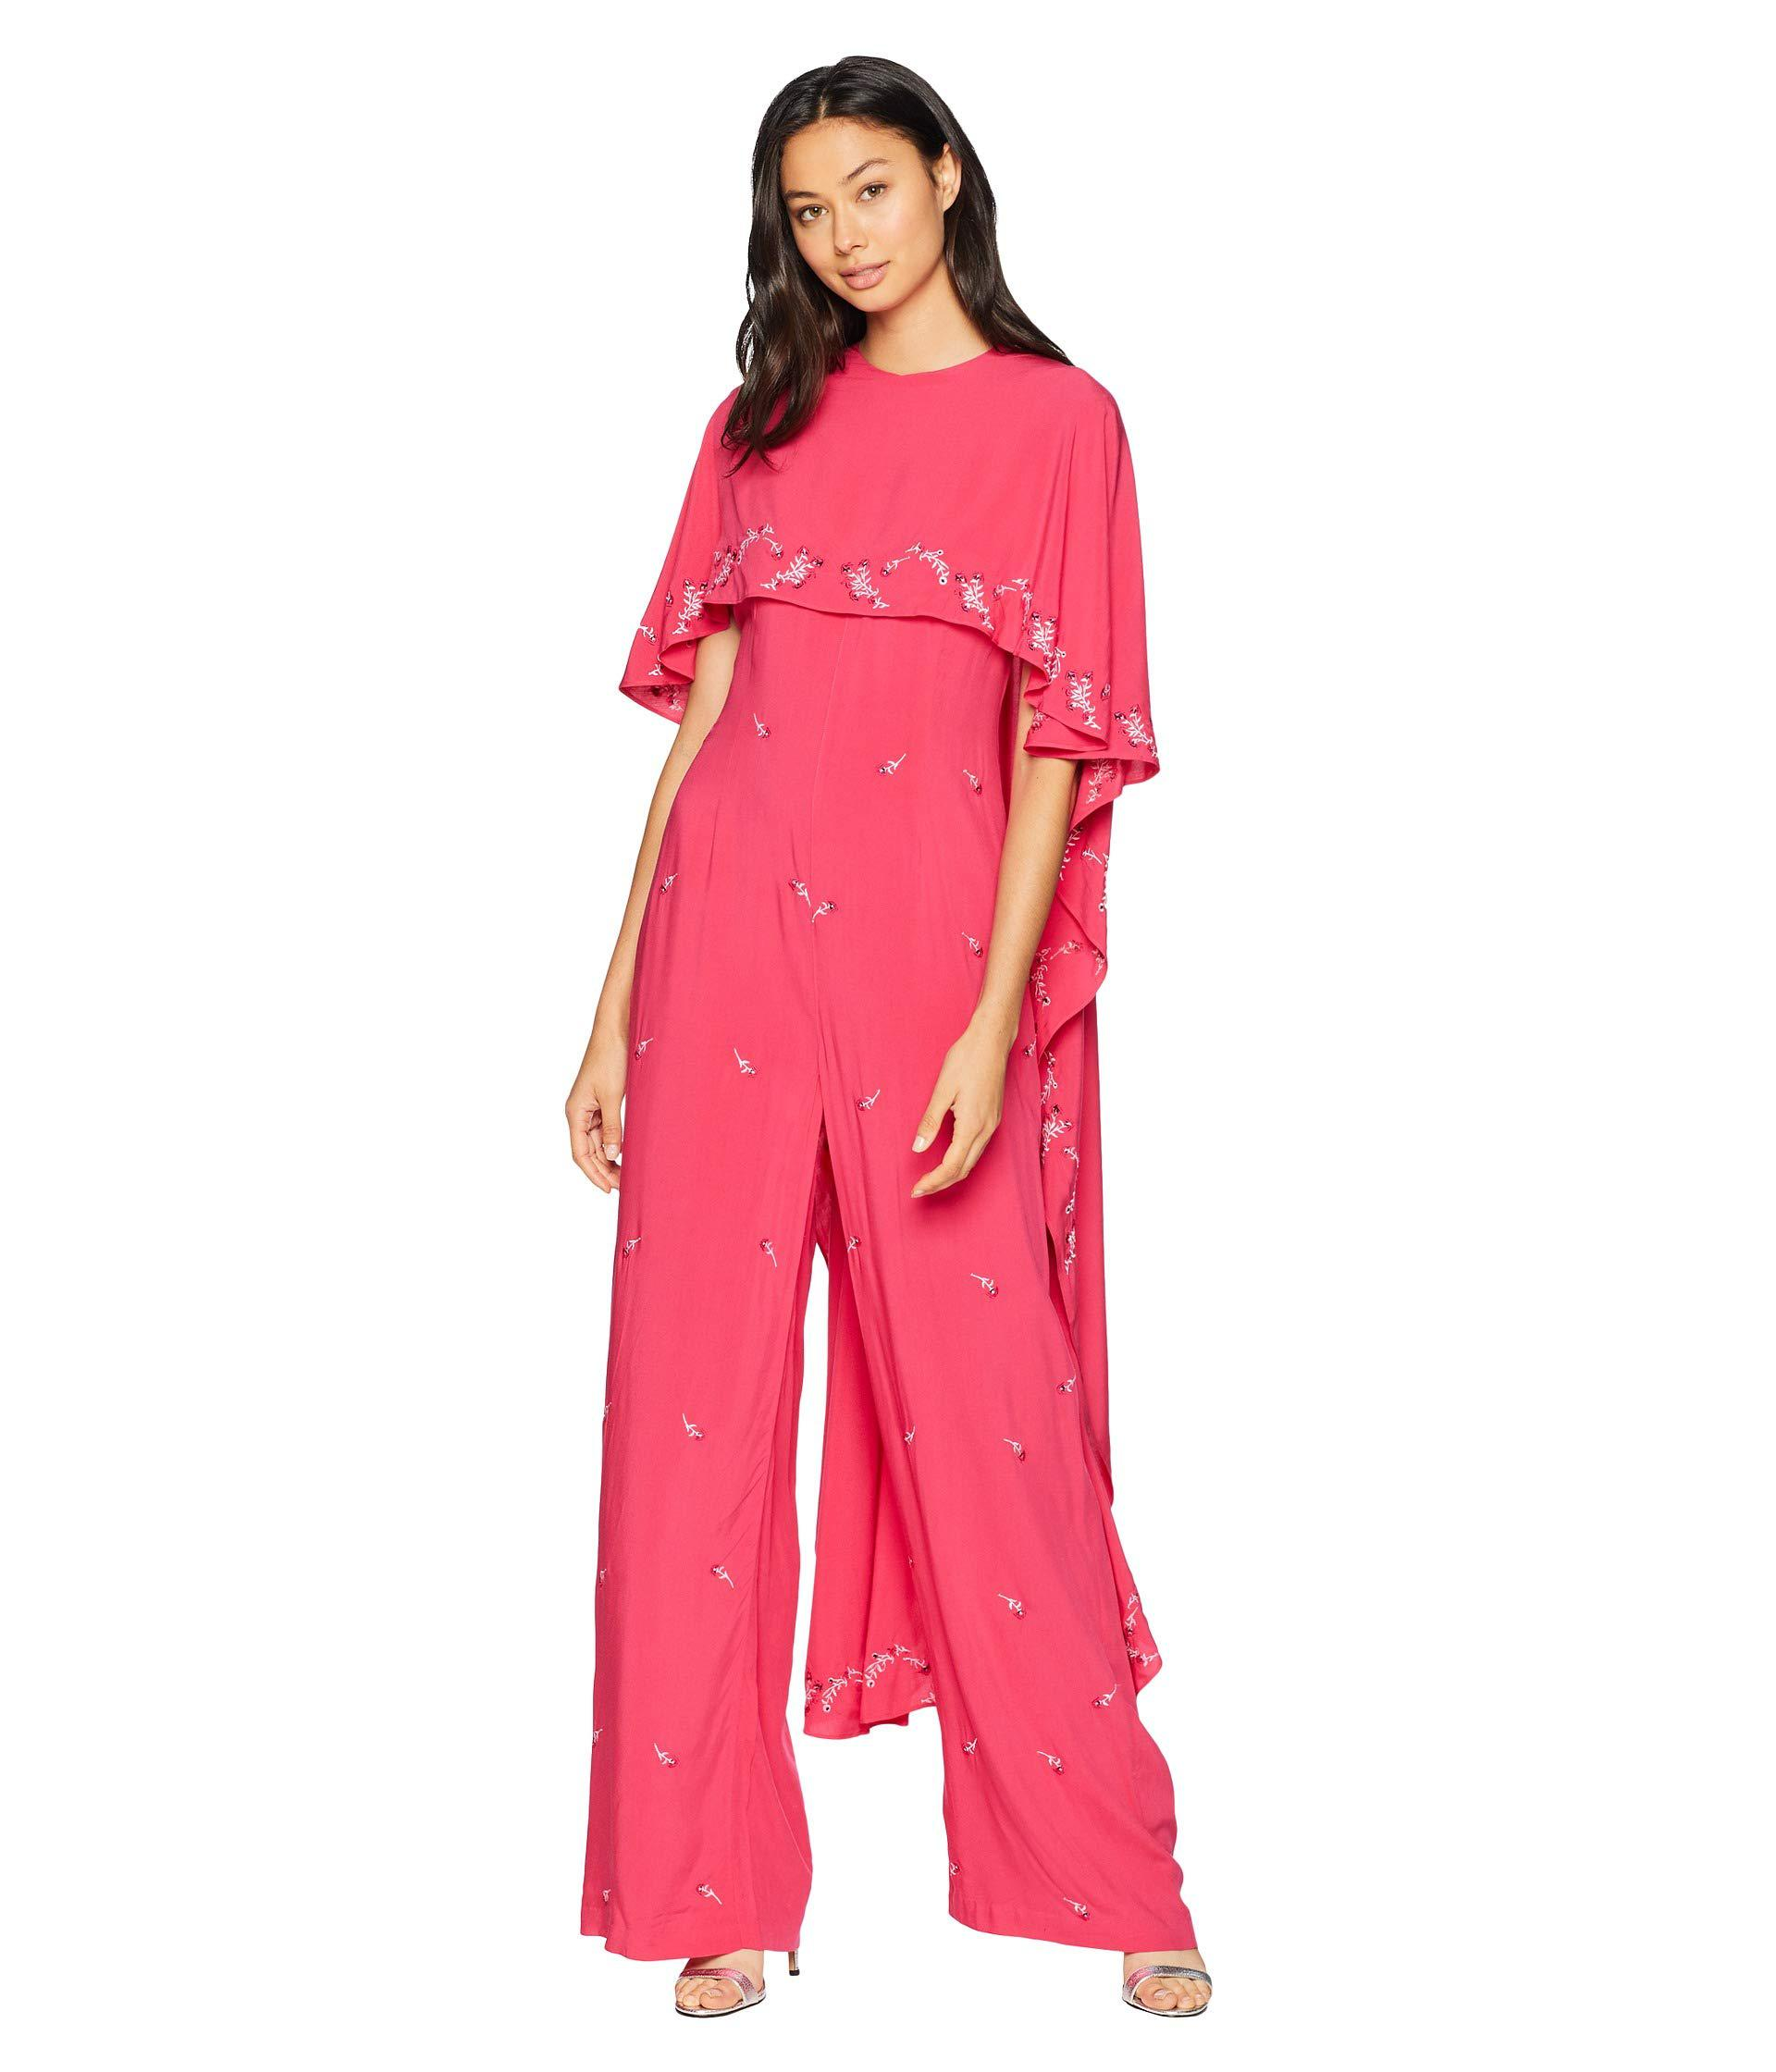 80fb1c1f176b Lyst - Juicy Couture Capelet Jumpsuit in Pink